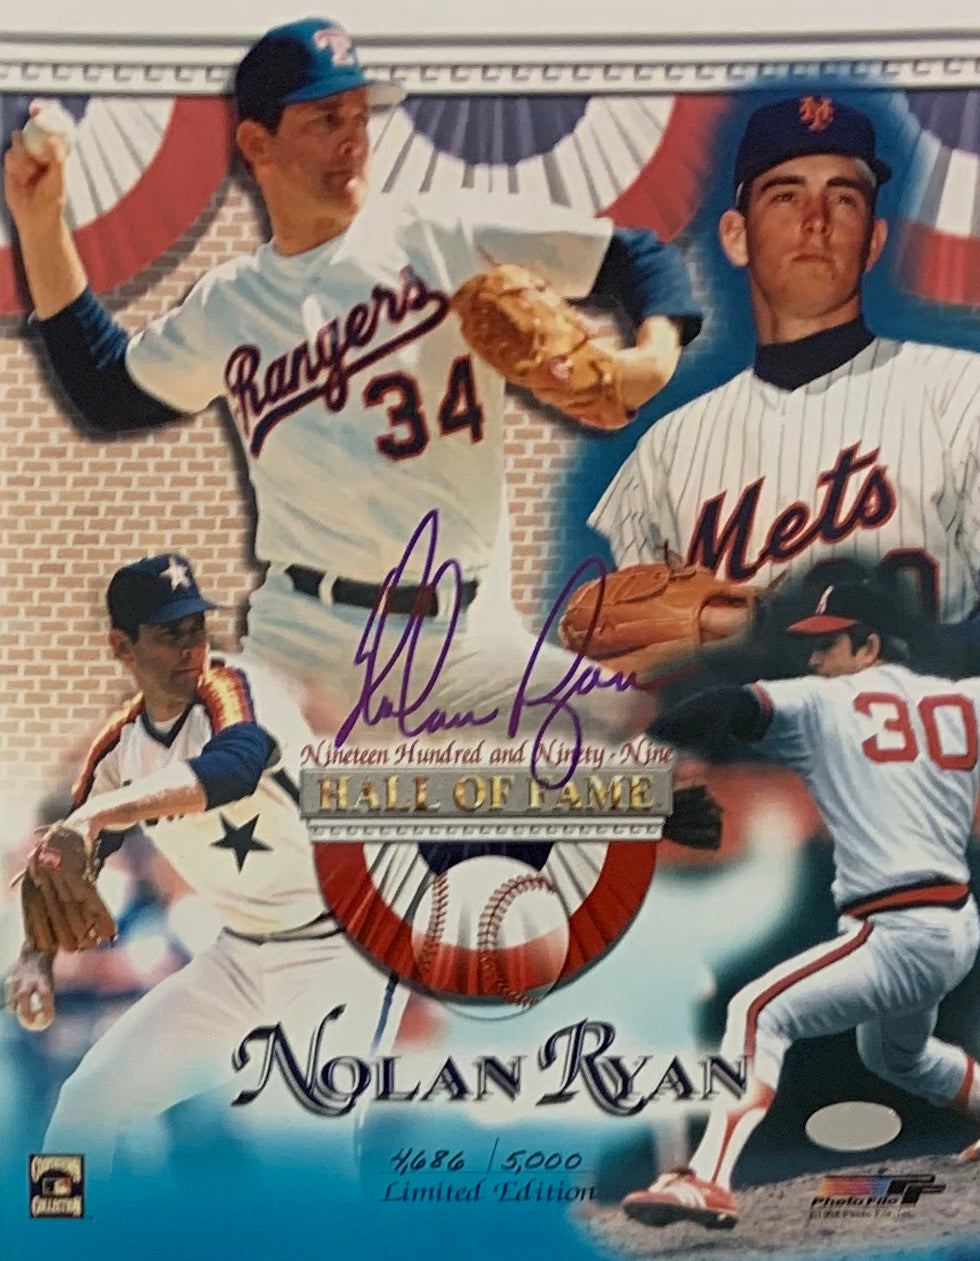 Nolan Ryan Signed 8x10 Photo Limited Edition - Latitude Sports Marketing